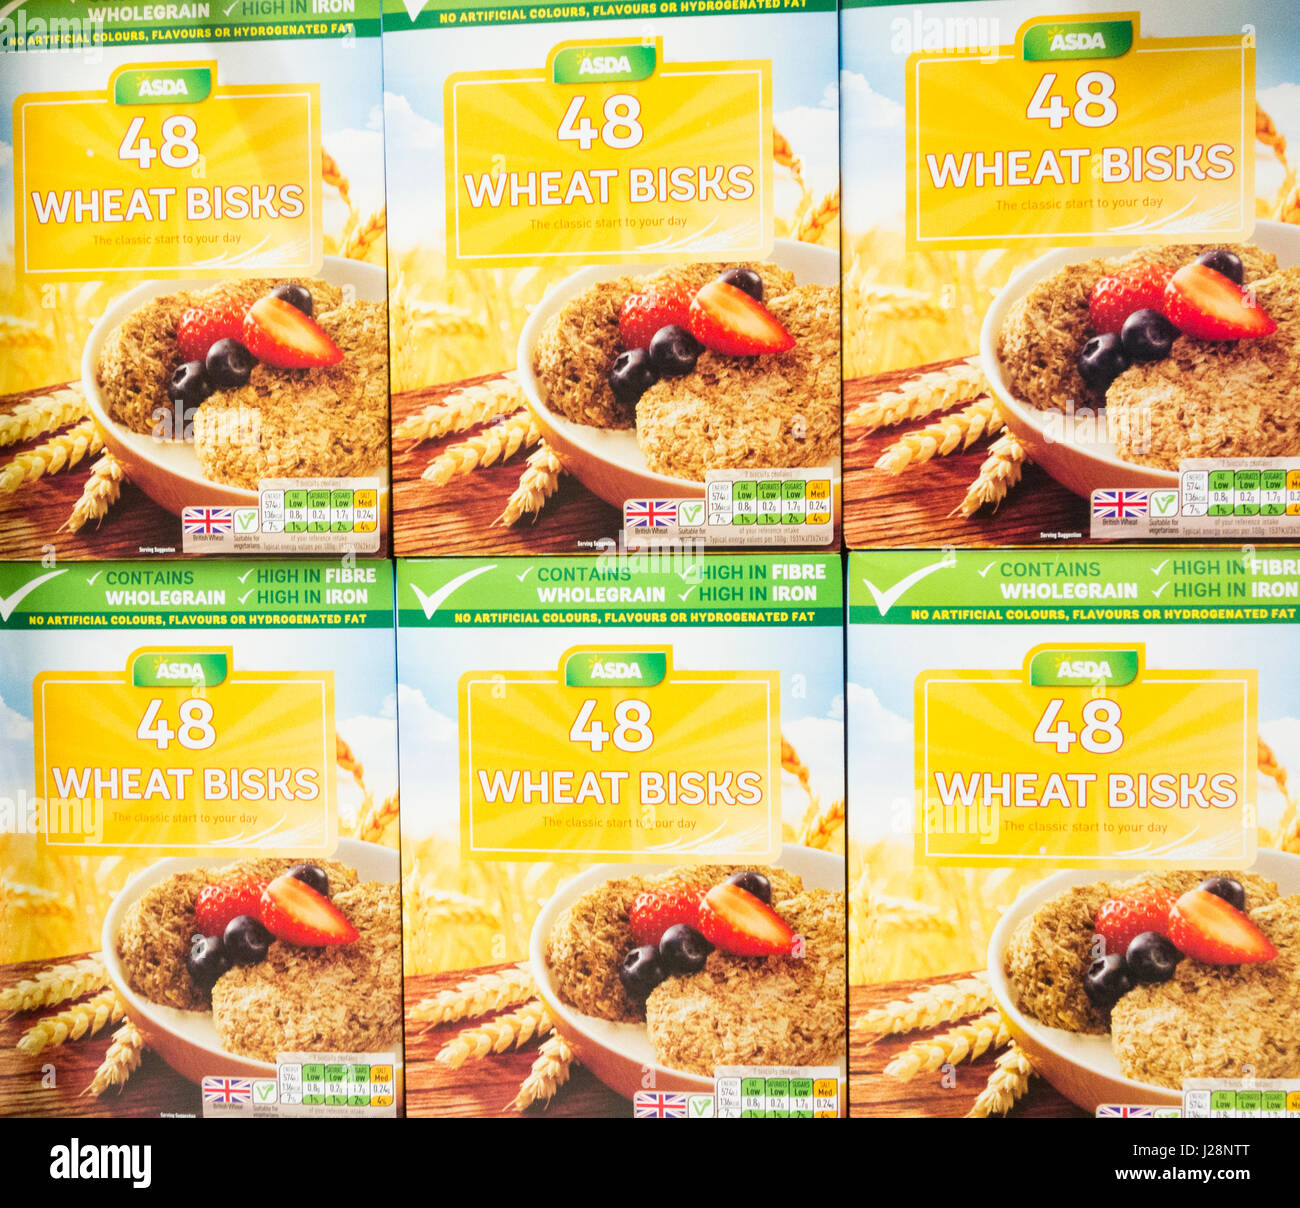 Asda own brand Wheat Bisks breakfast cereal. UK - Stock Image